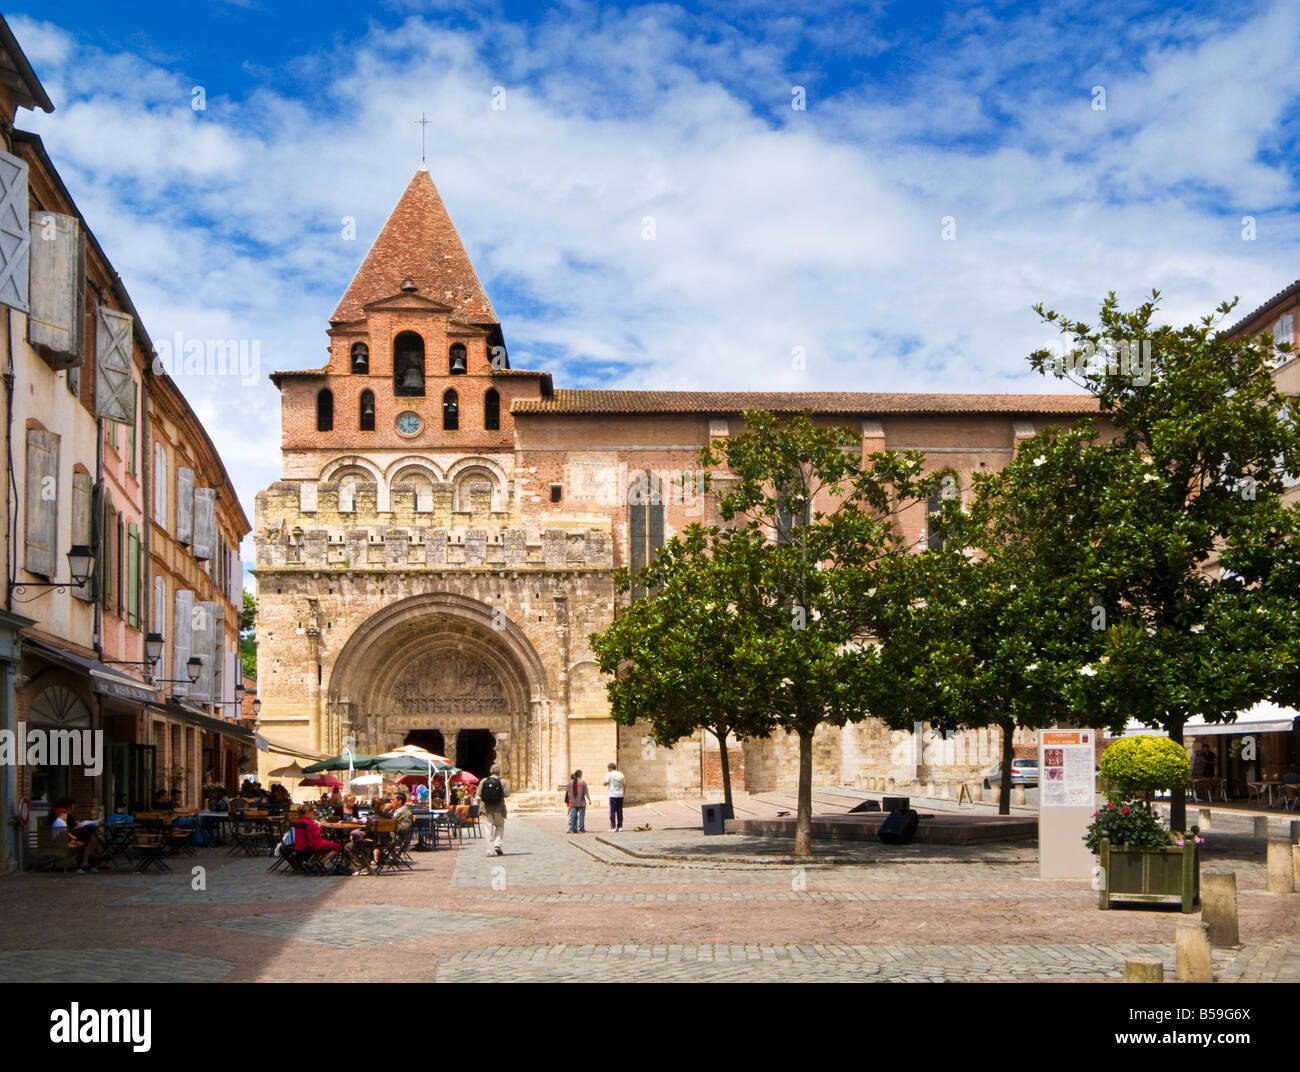 The Abbaye Saint Pierre de Moissac in Moissac, Tarn et Garonne, France Europe - Stock Image